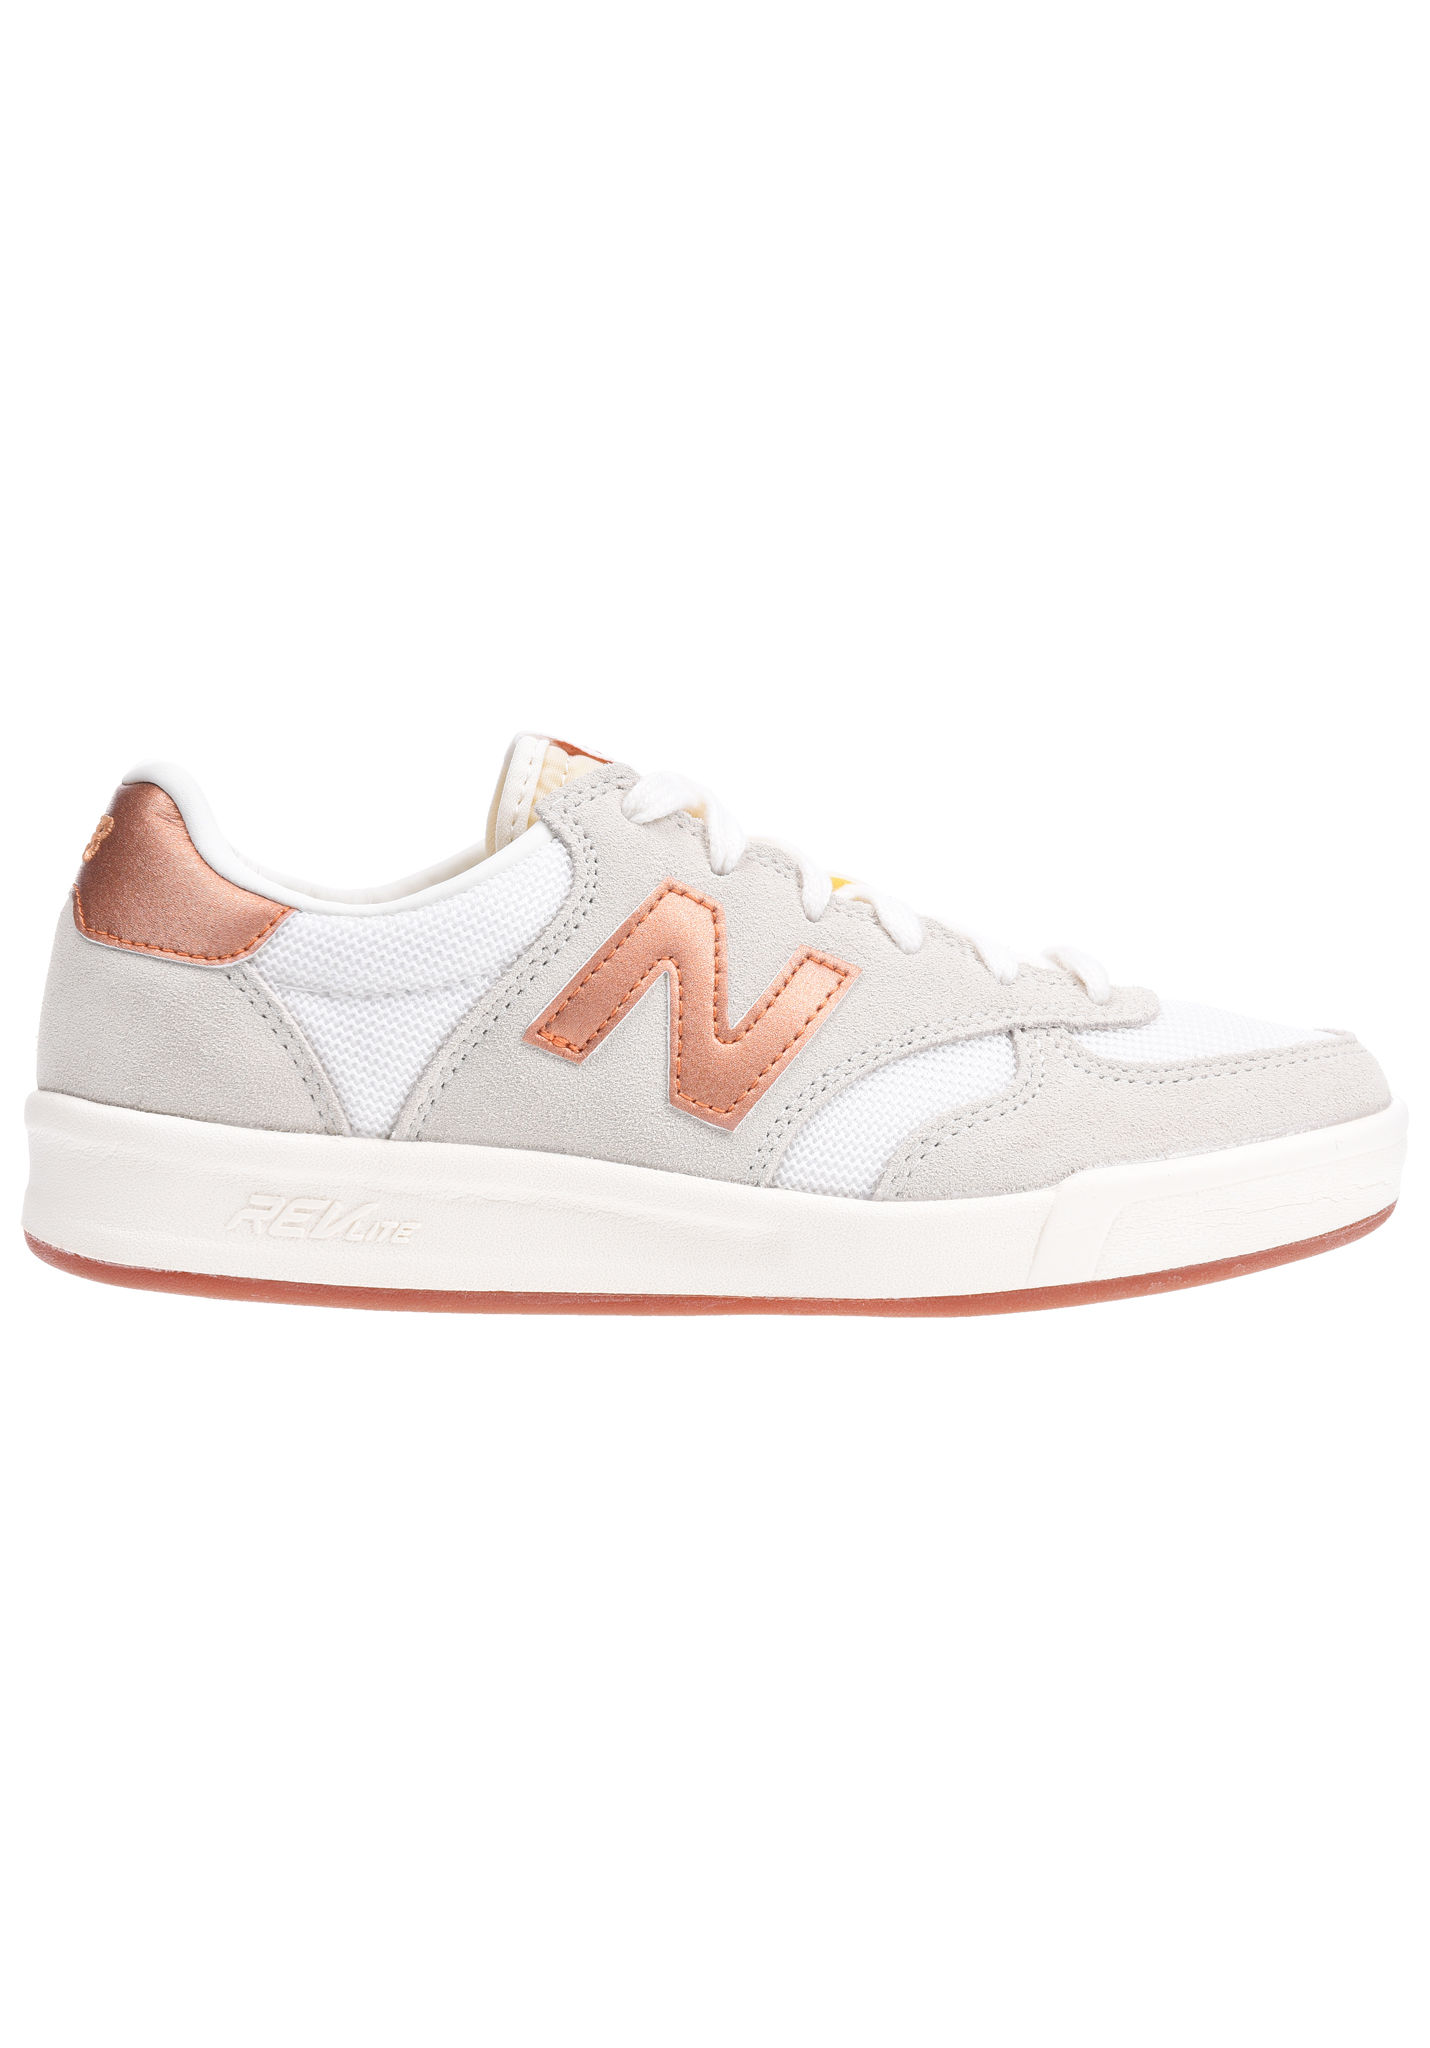 9b31c76c46f NEW BALANCE WRT300 B - Sneakers for Women - White - Planet Sports